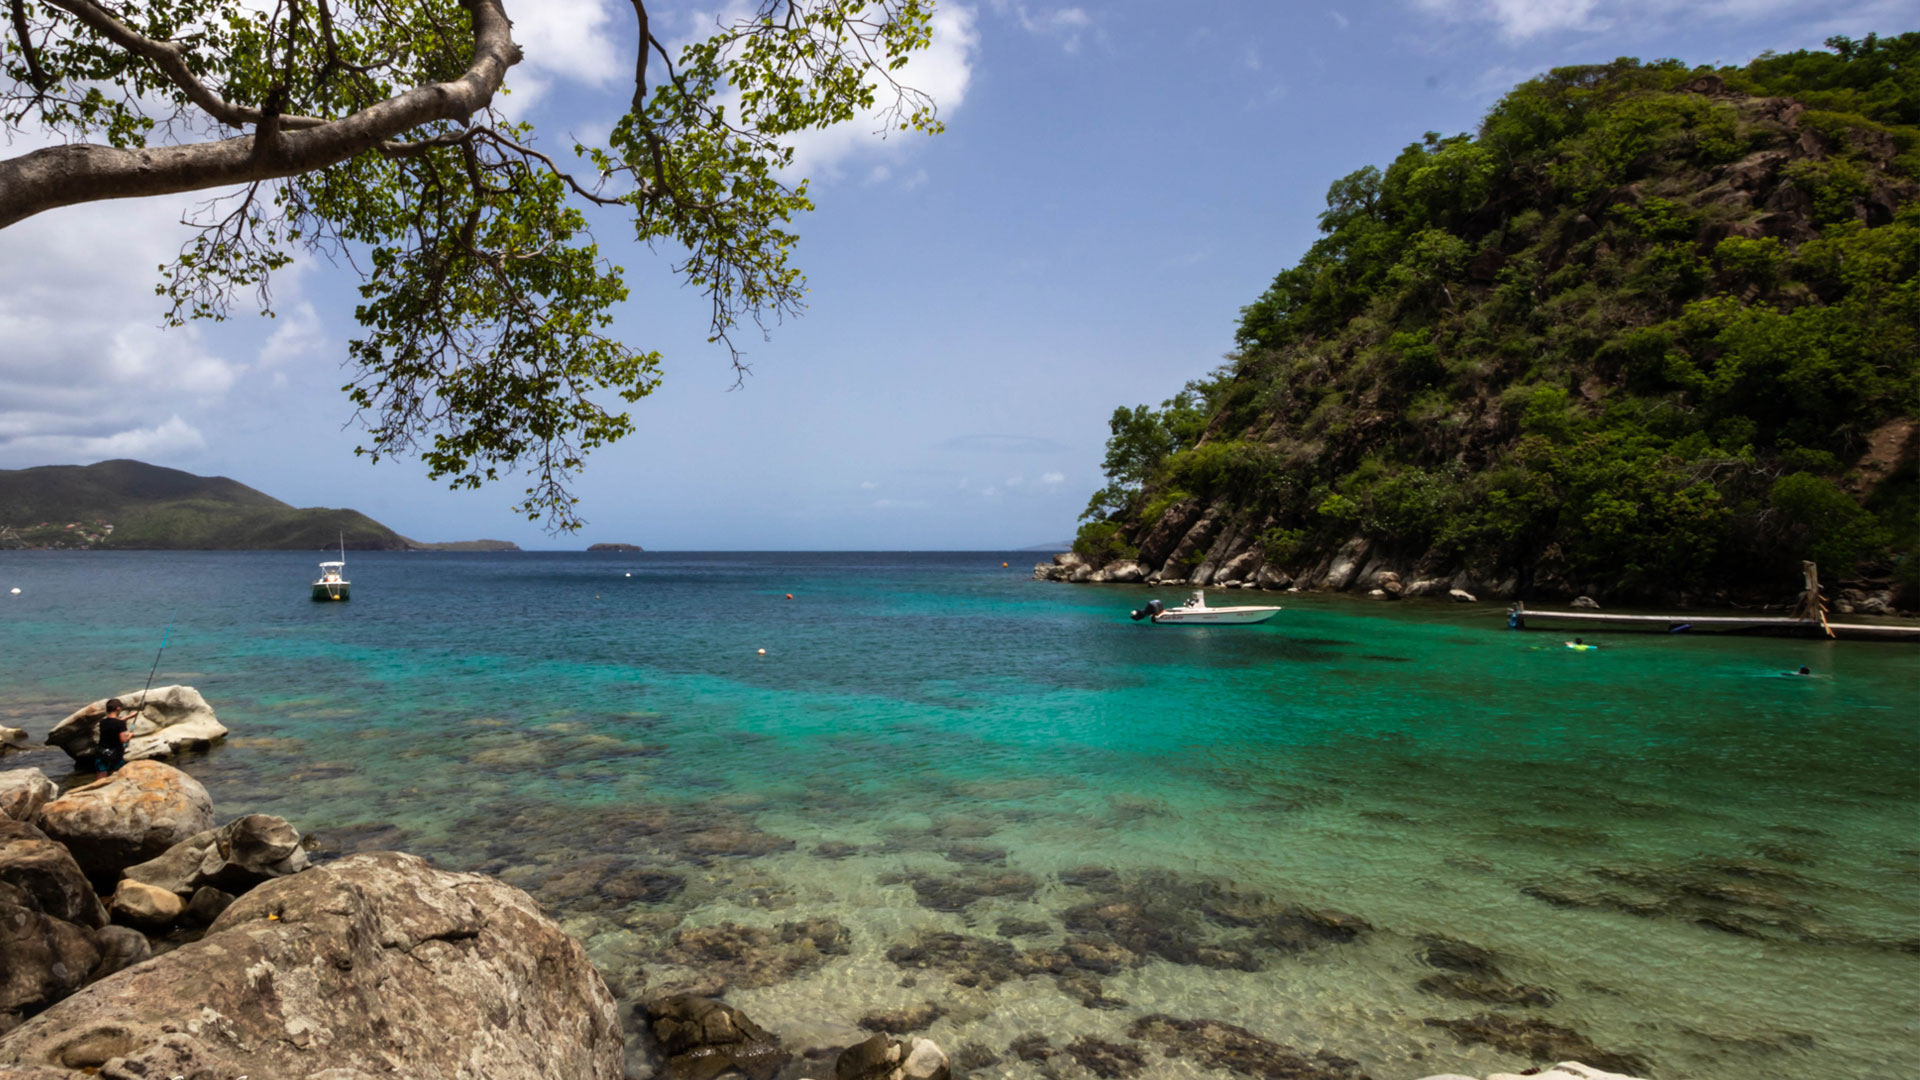 Explore The Beauty Of Caribbean: Sailing Holiday In The Caribbean Around The Island Of